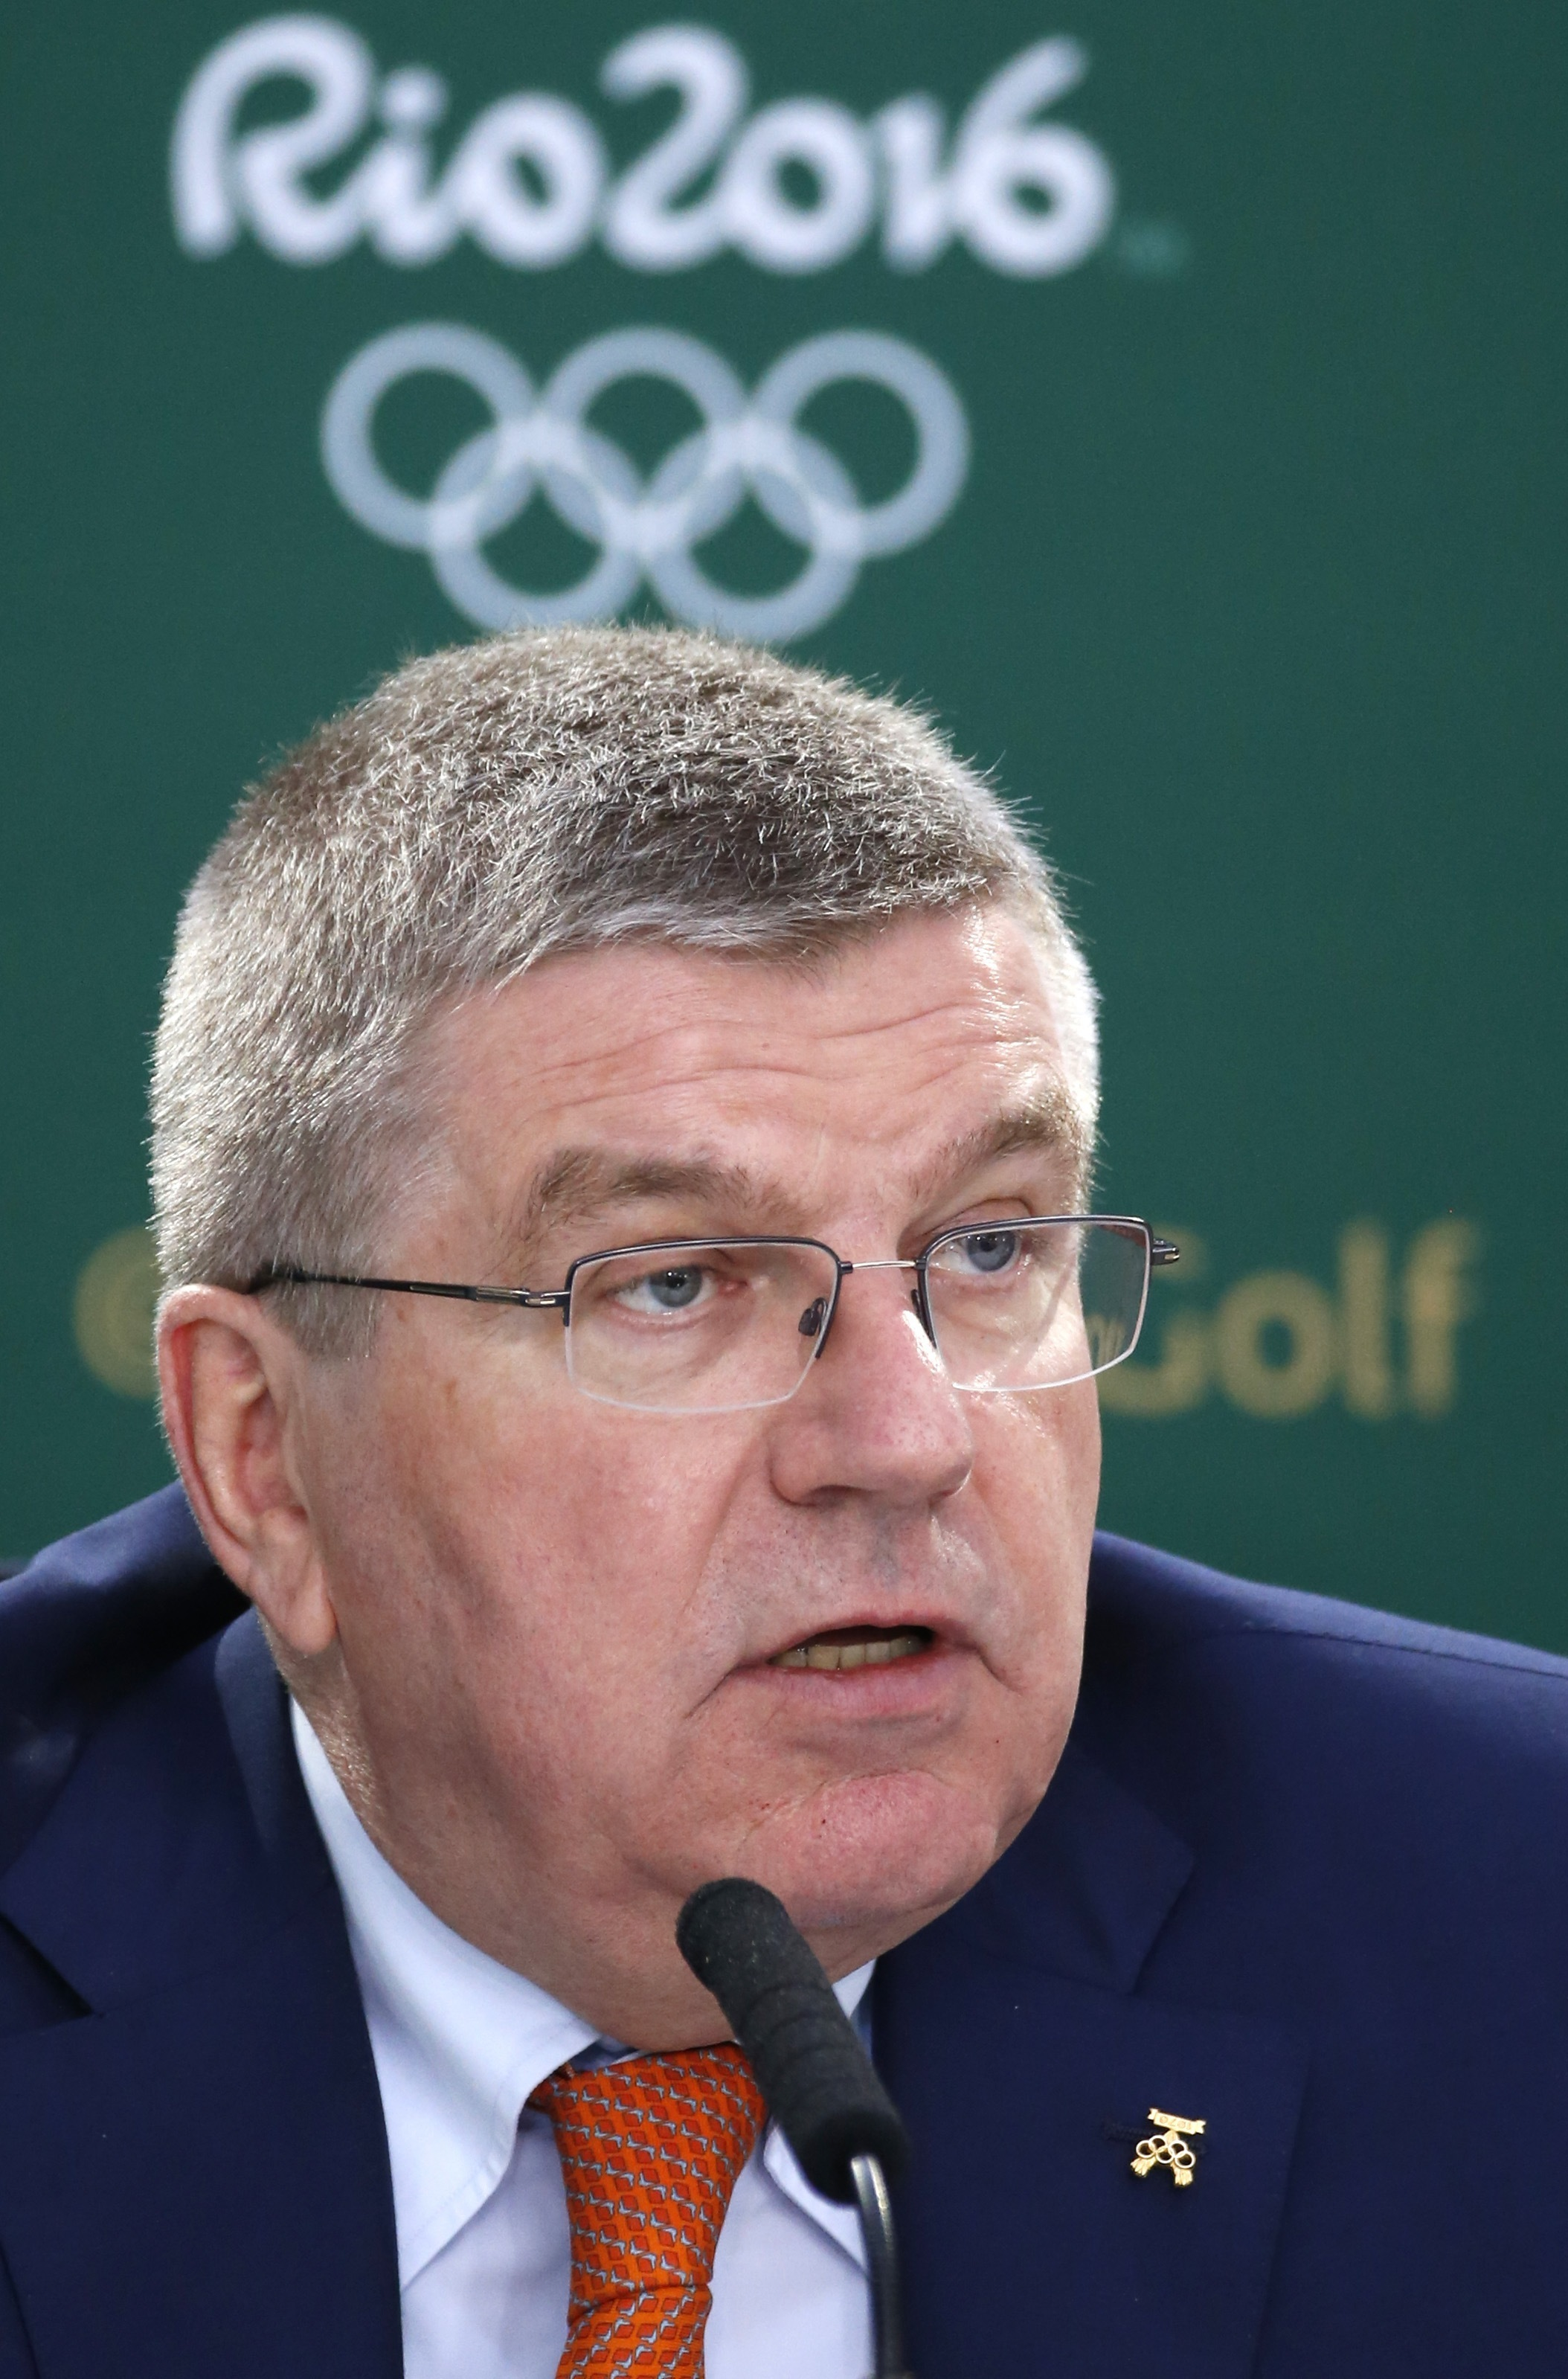 FILE - In this July 18, 2015 file photo International Olympic Committee president Thomas Bach speaks during a news conference during the second round of the British Open Golf Championship at the Old Course, St. Andrews, Scotland. On Monday, July 18, 2016